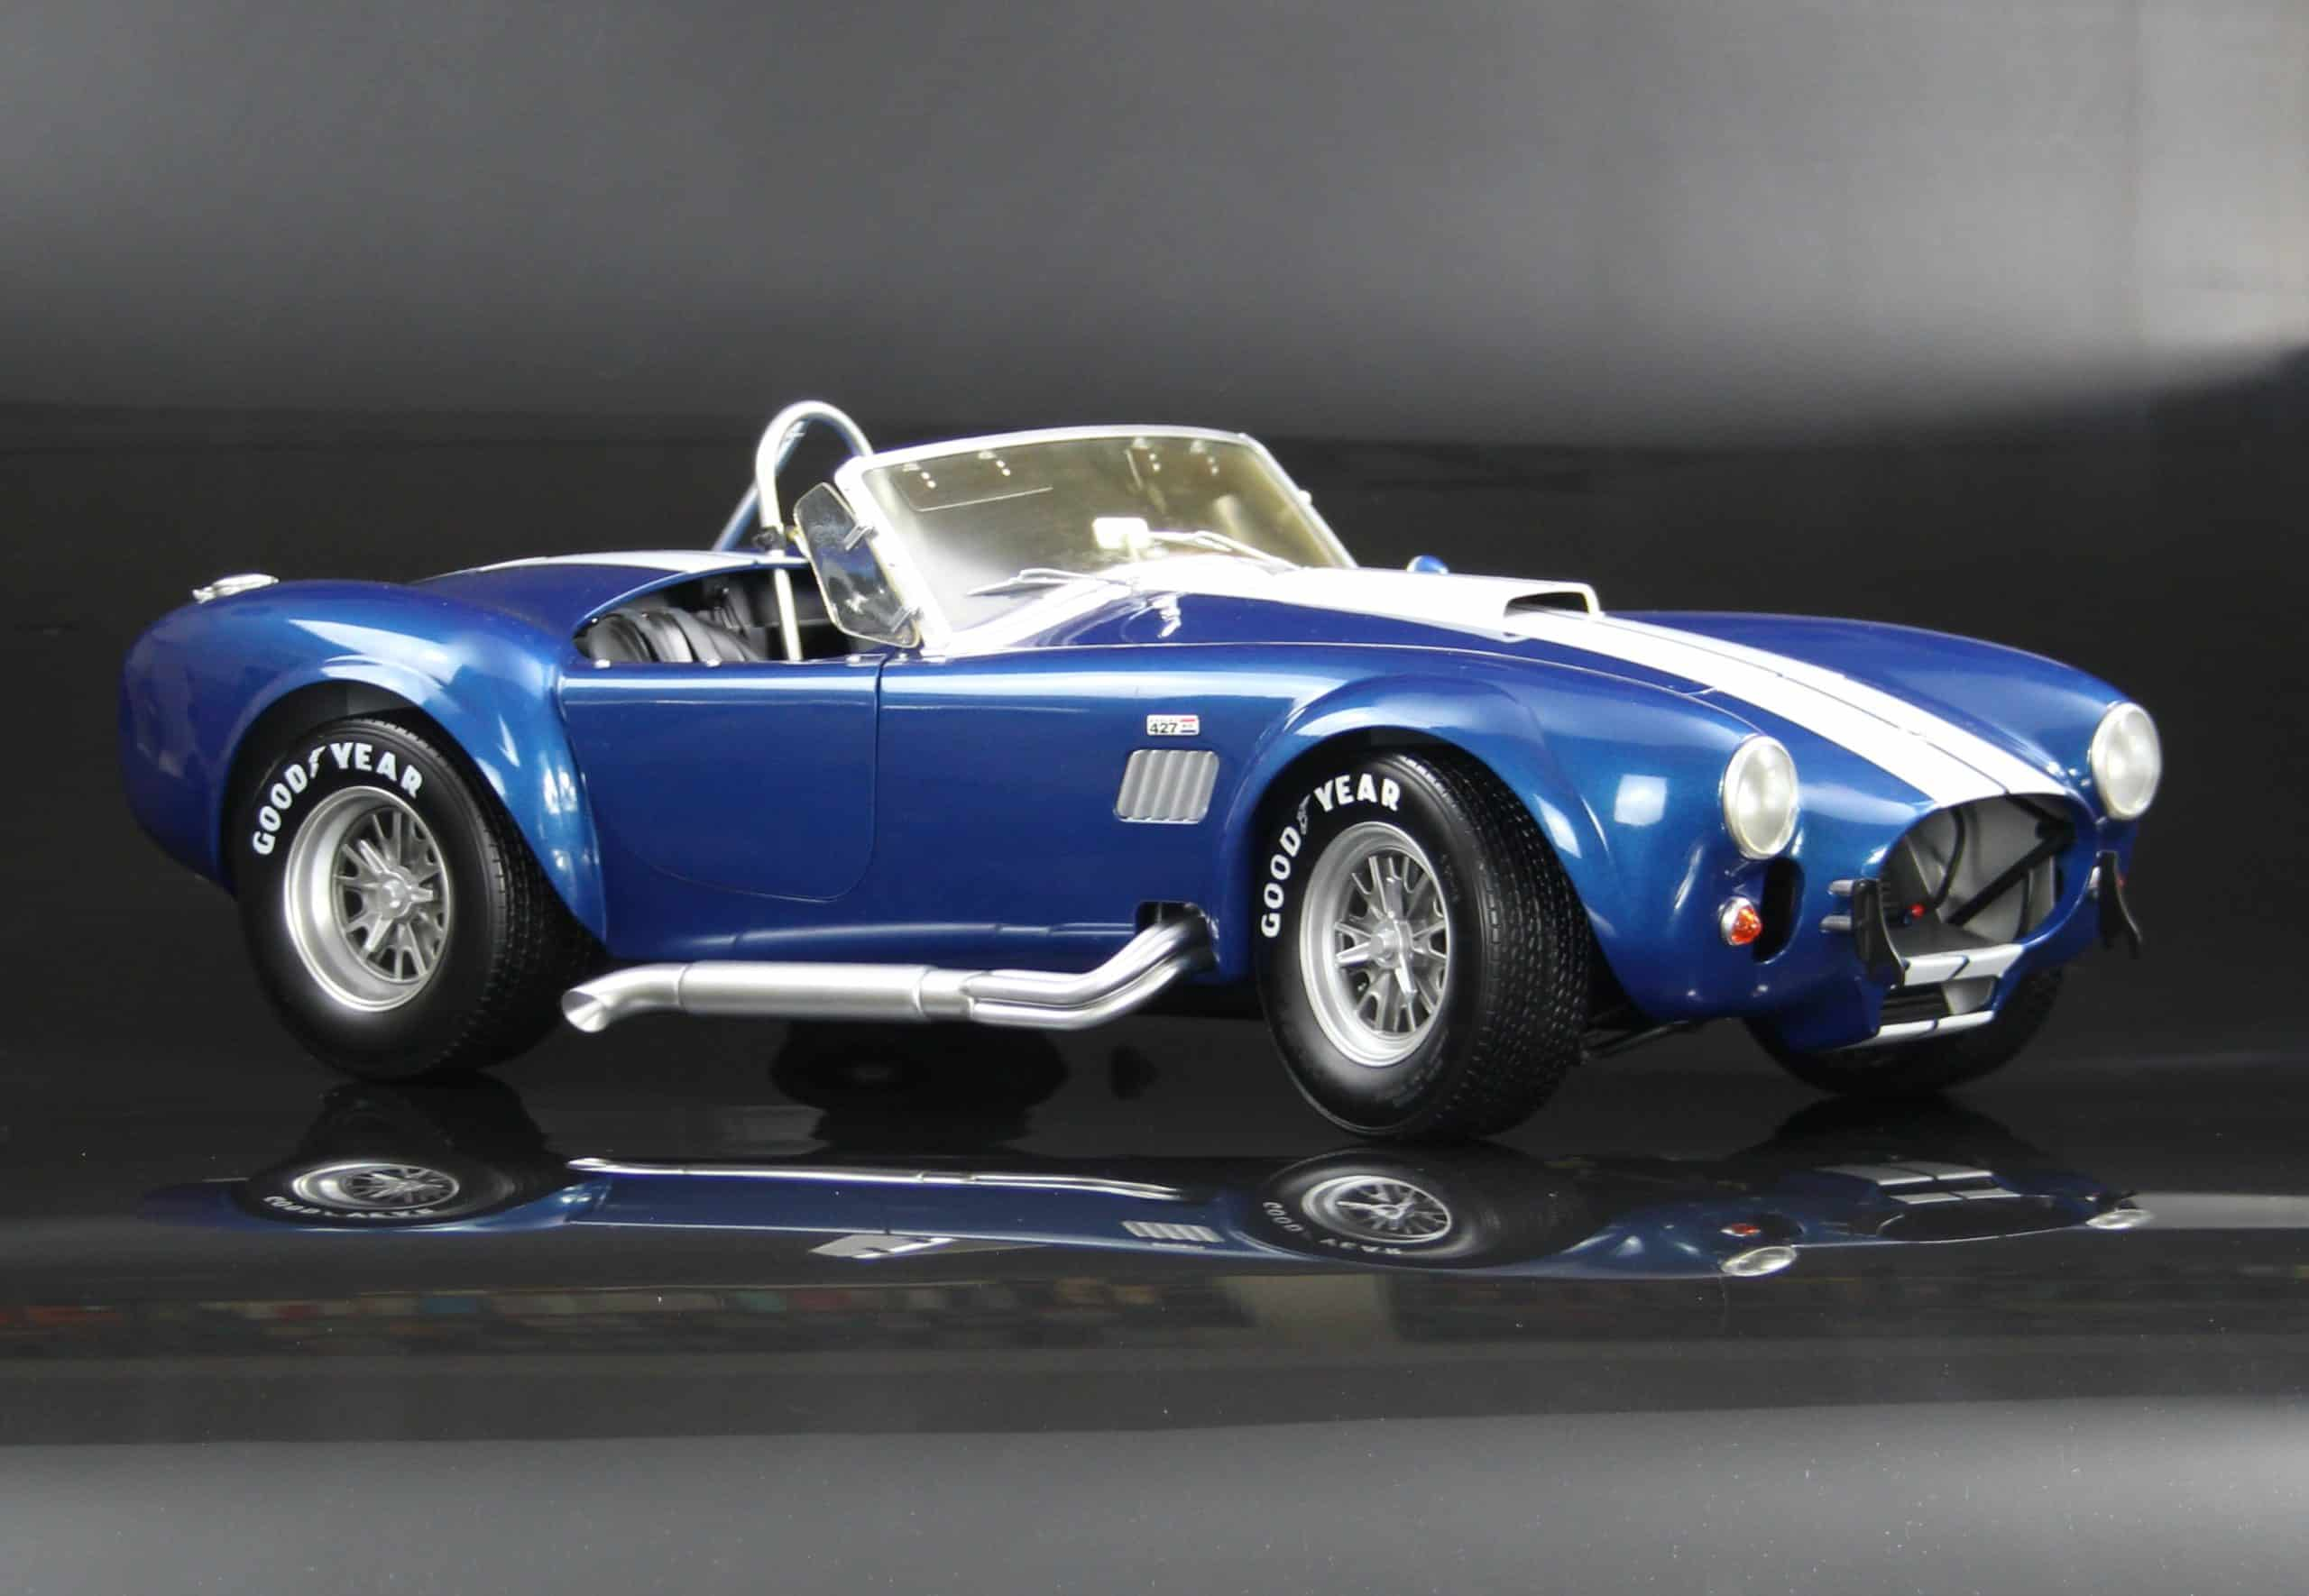 Developing the 1:8 Shelby Cobra